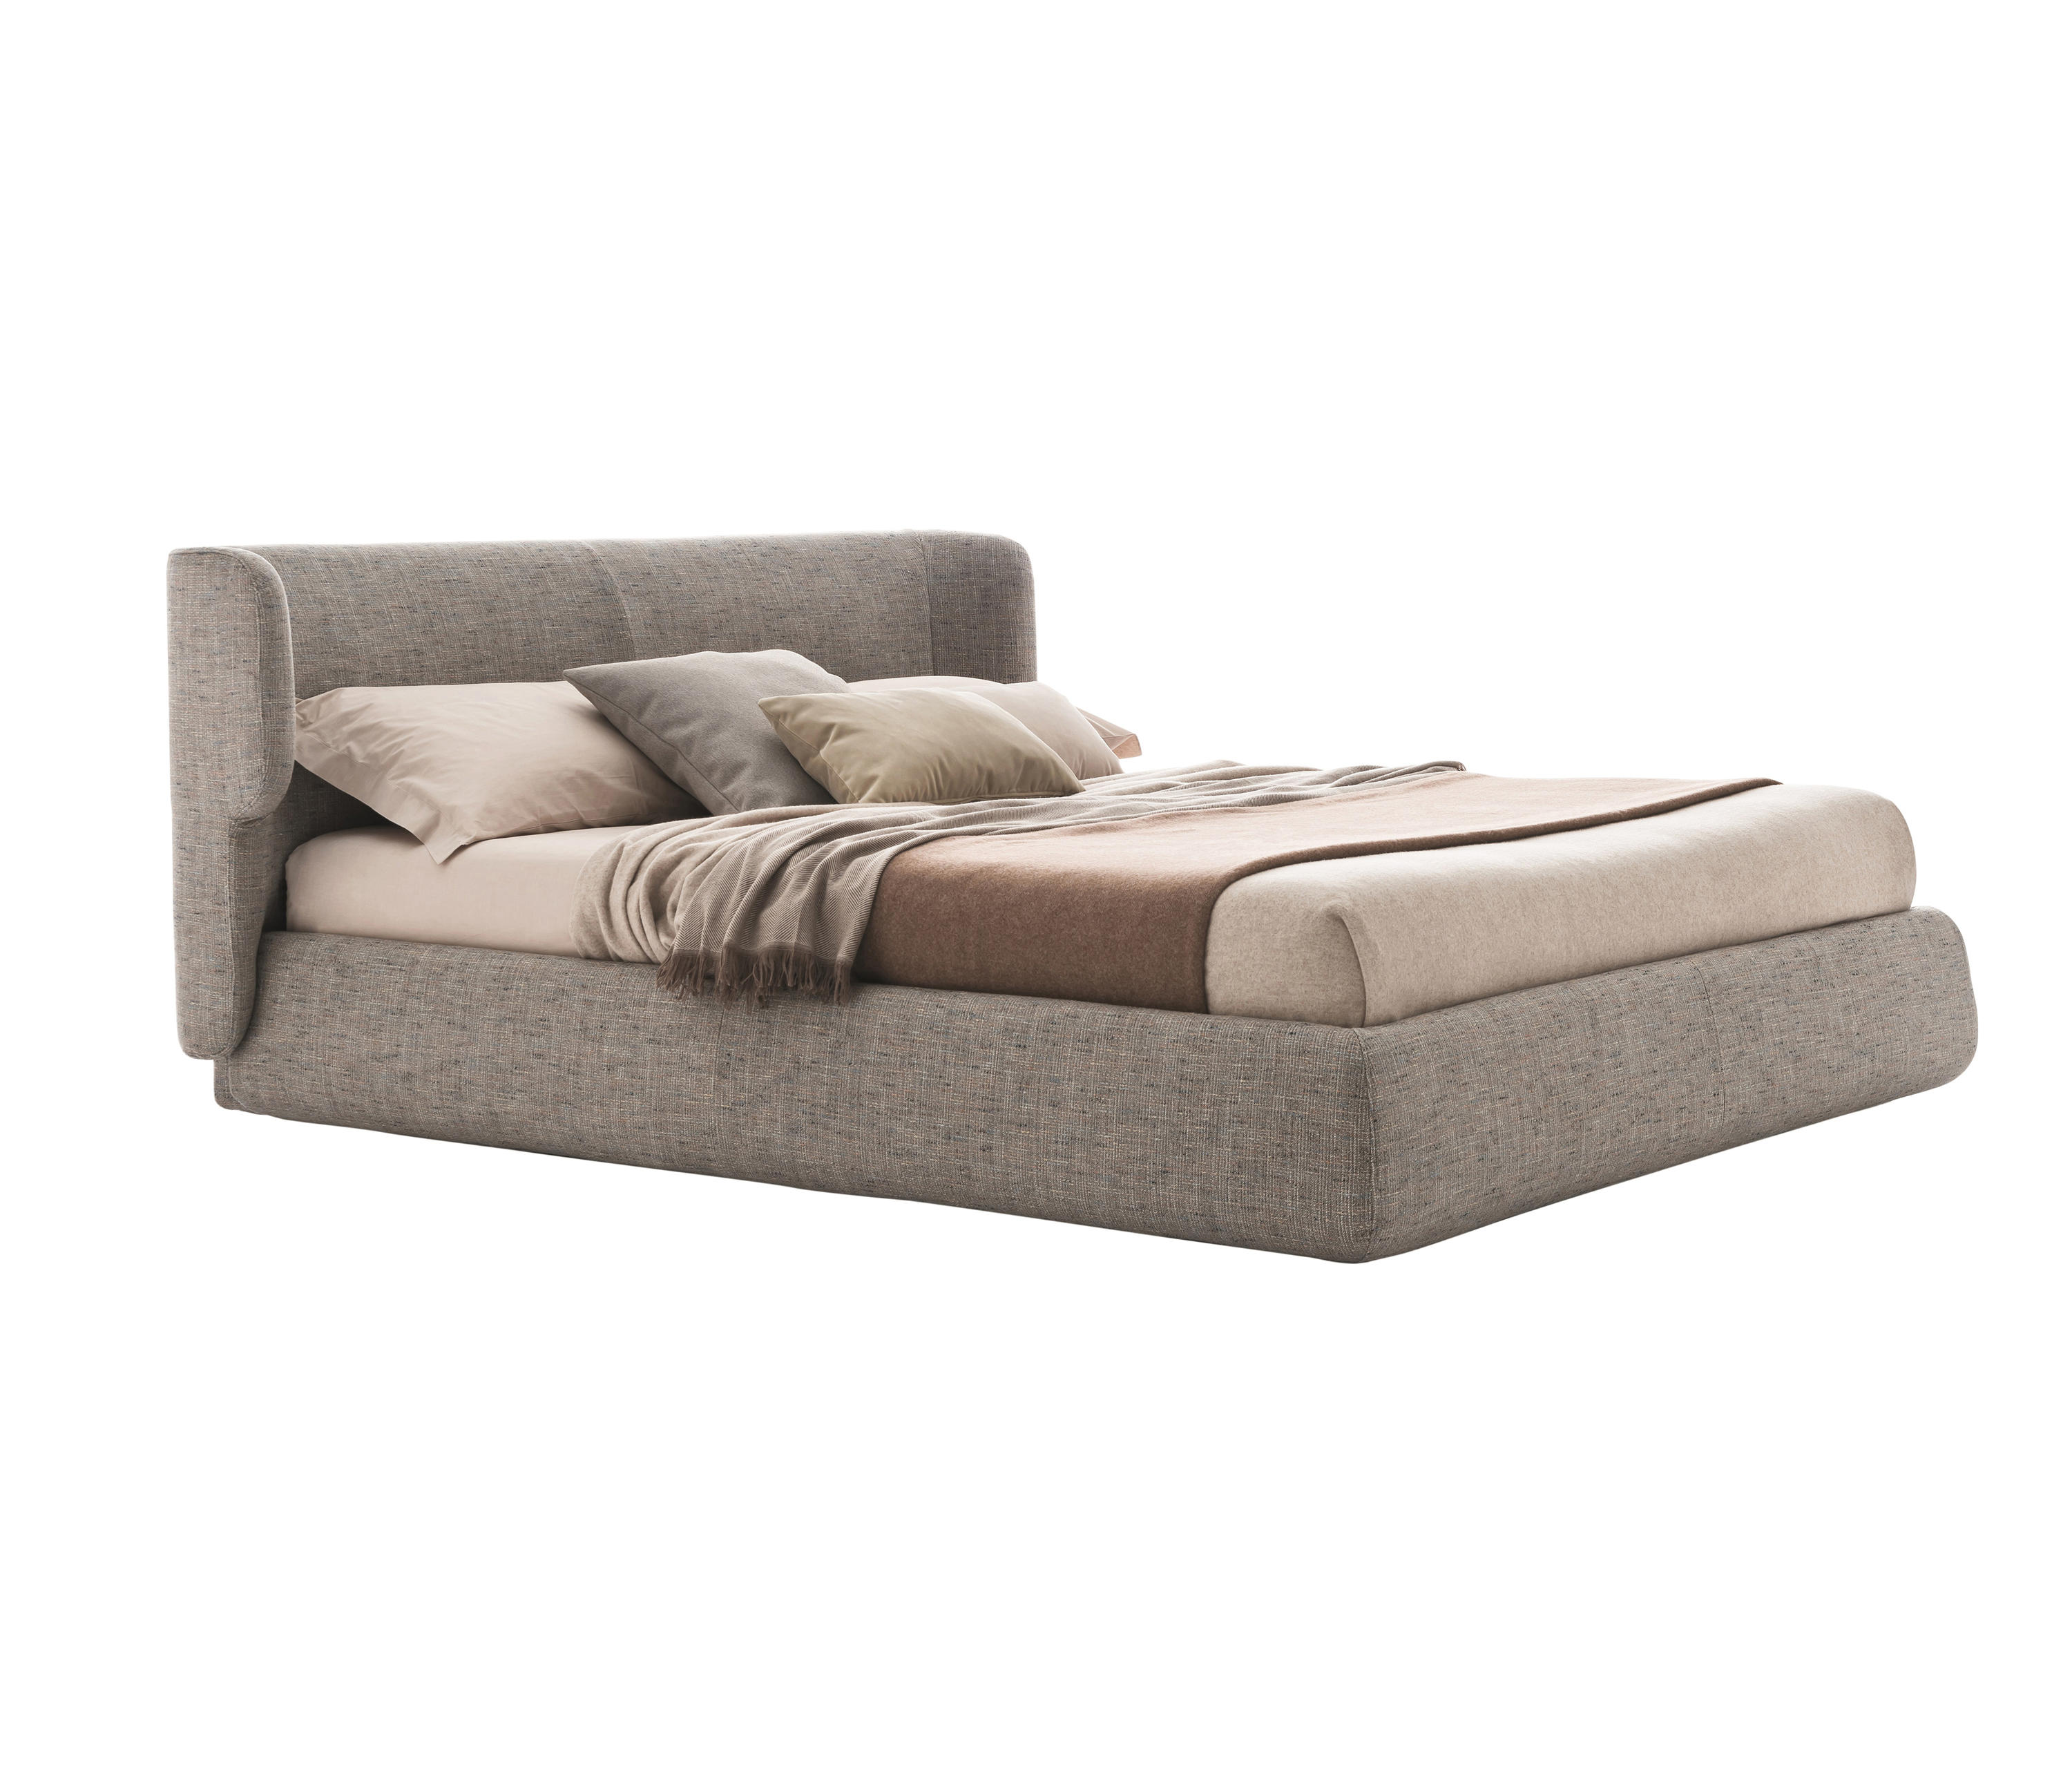 Claire Double Beds From Ditre Italia Architonic